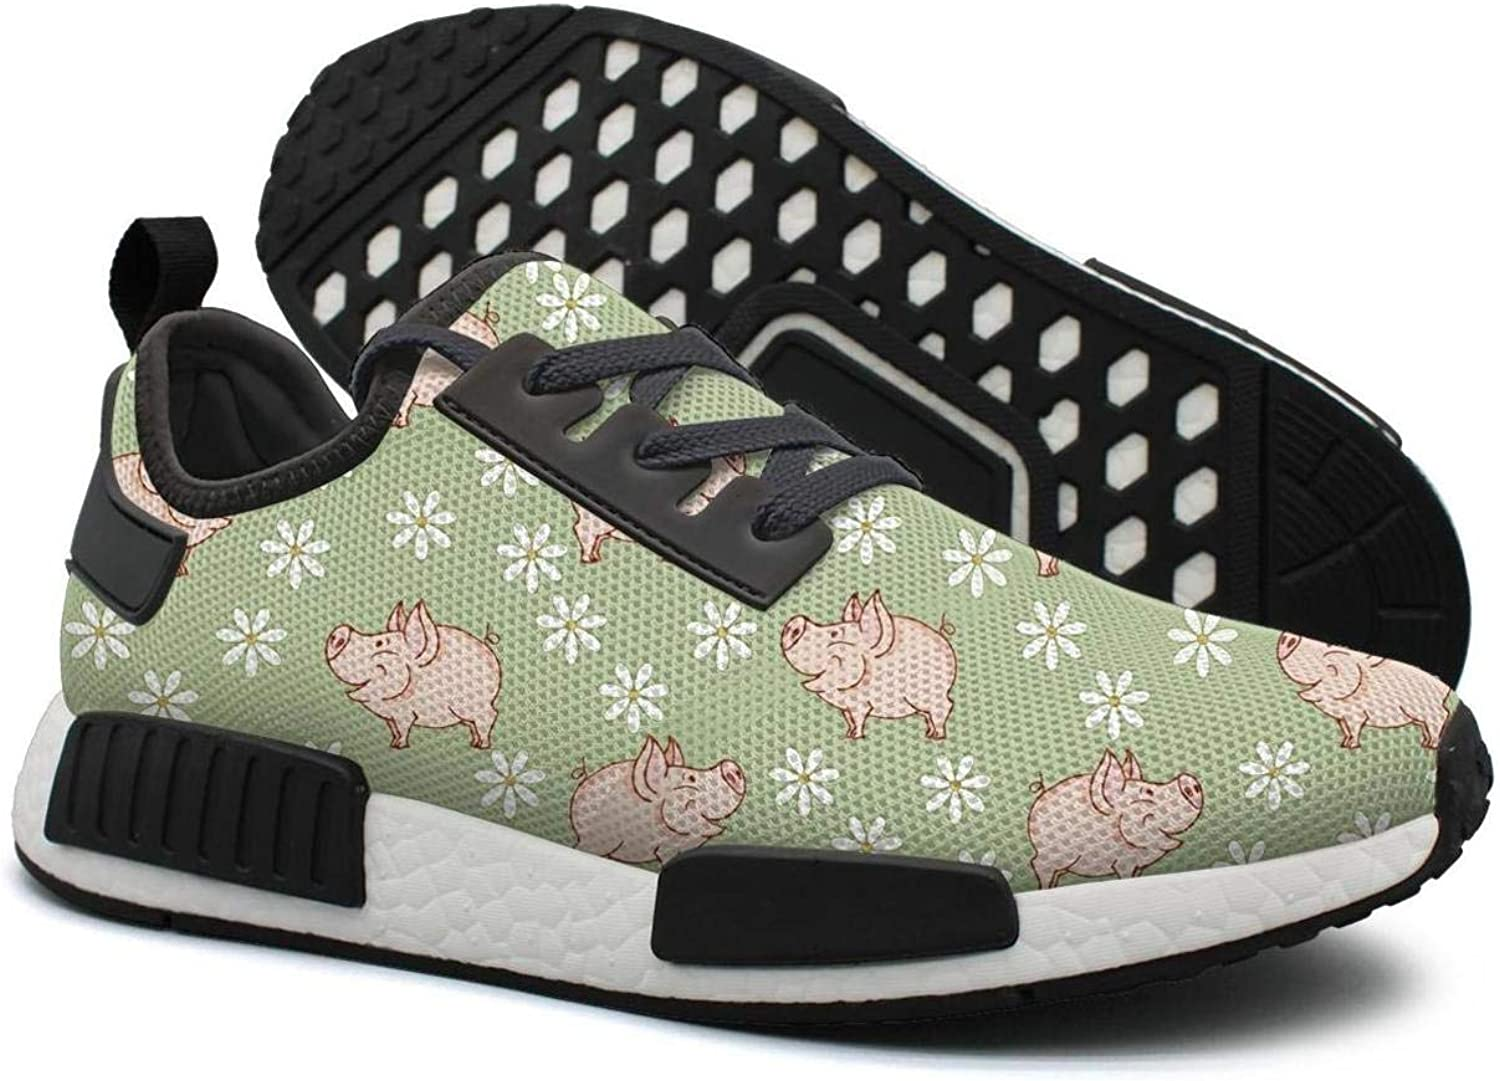 Genie Pig with Daisy in The Green Meadow Women's Novelty Lightweight Sneakers Gym Outdoor Sports shoes